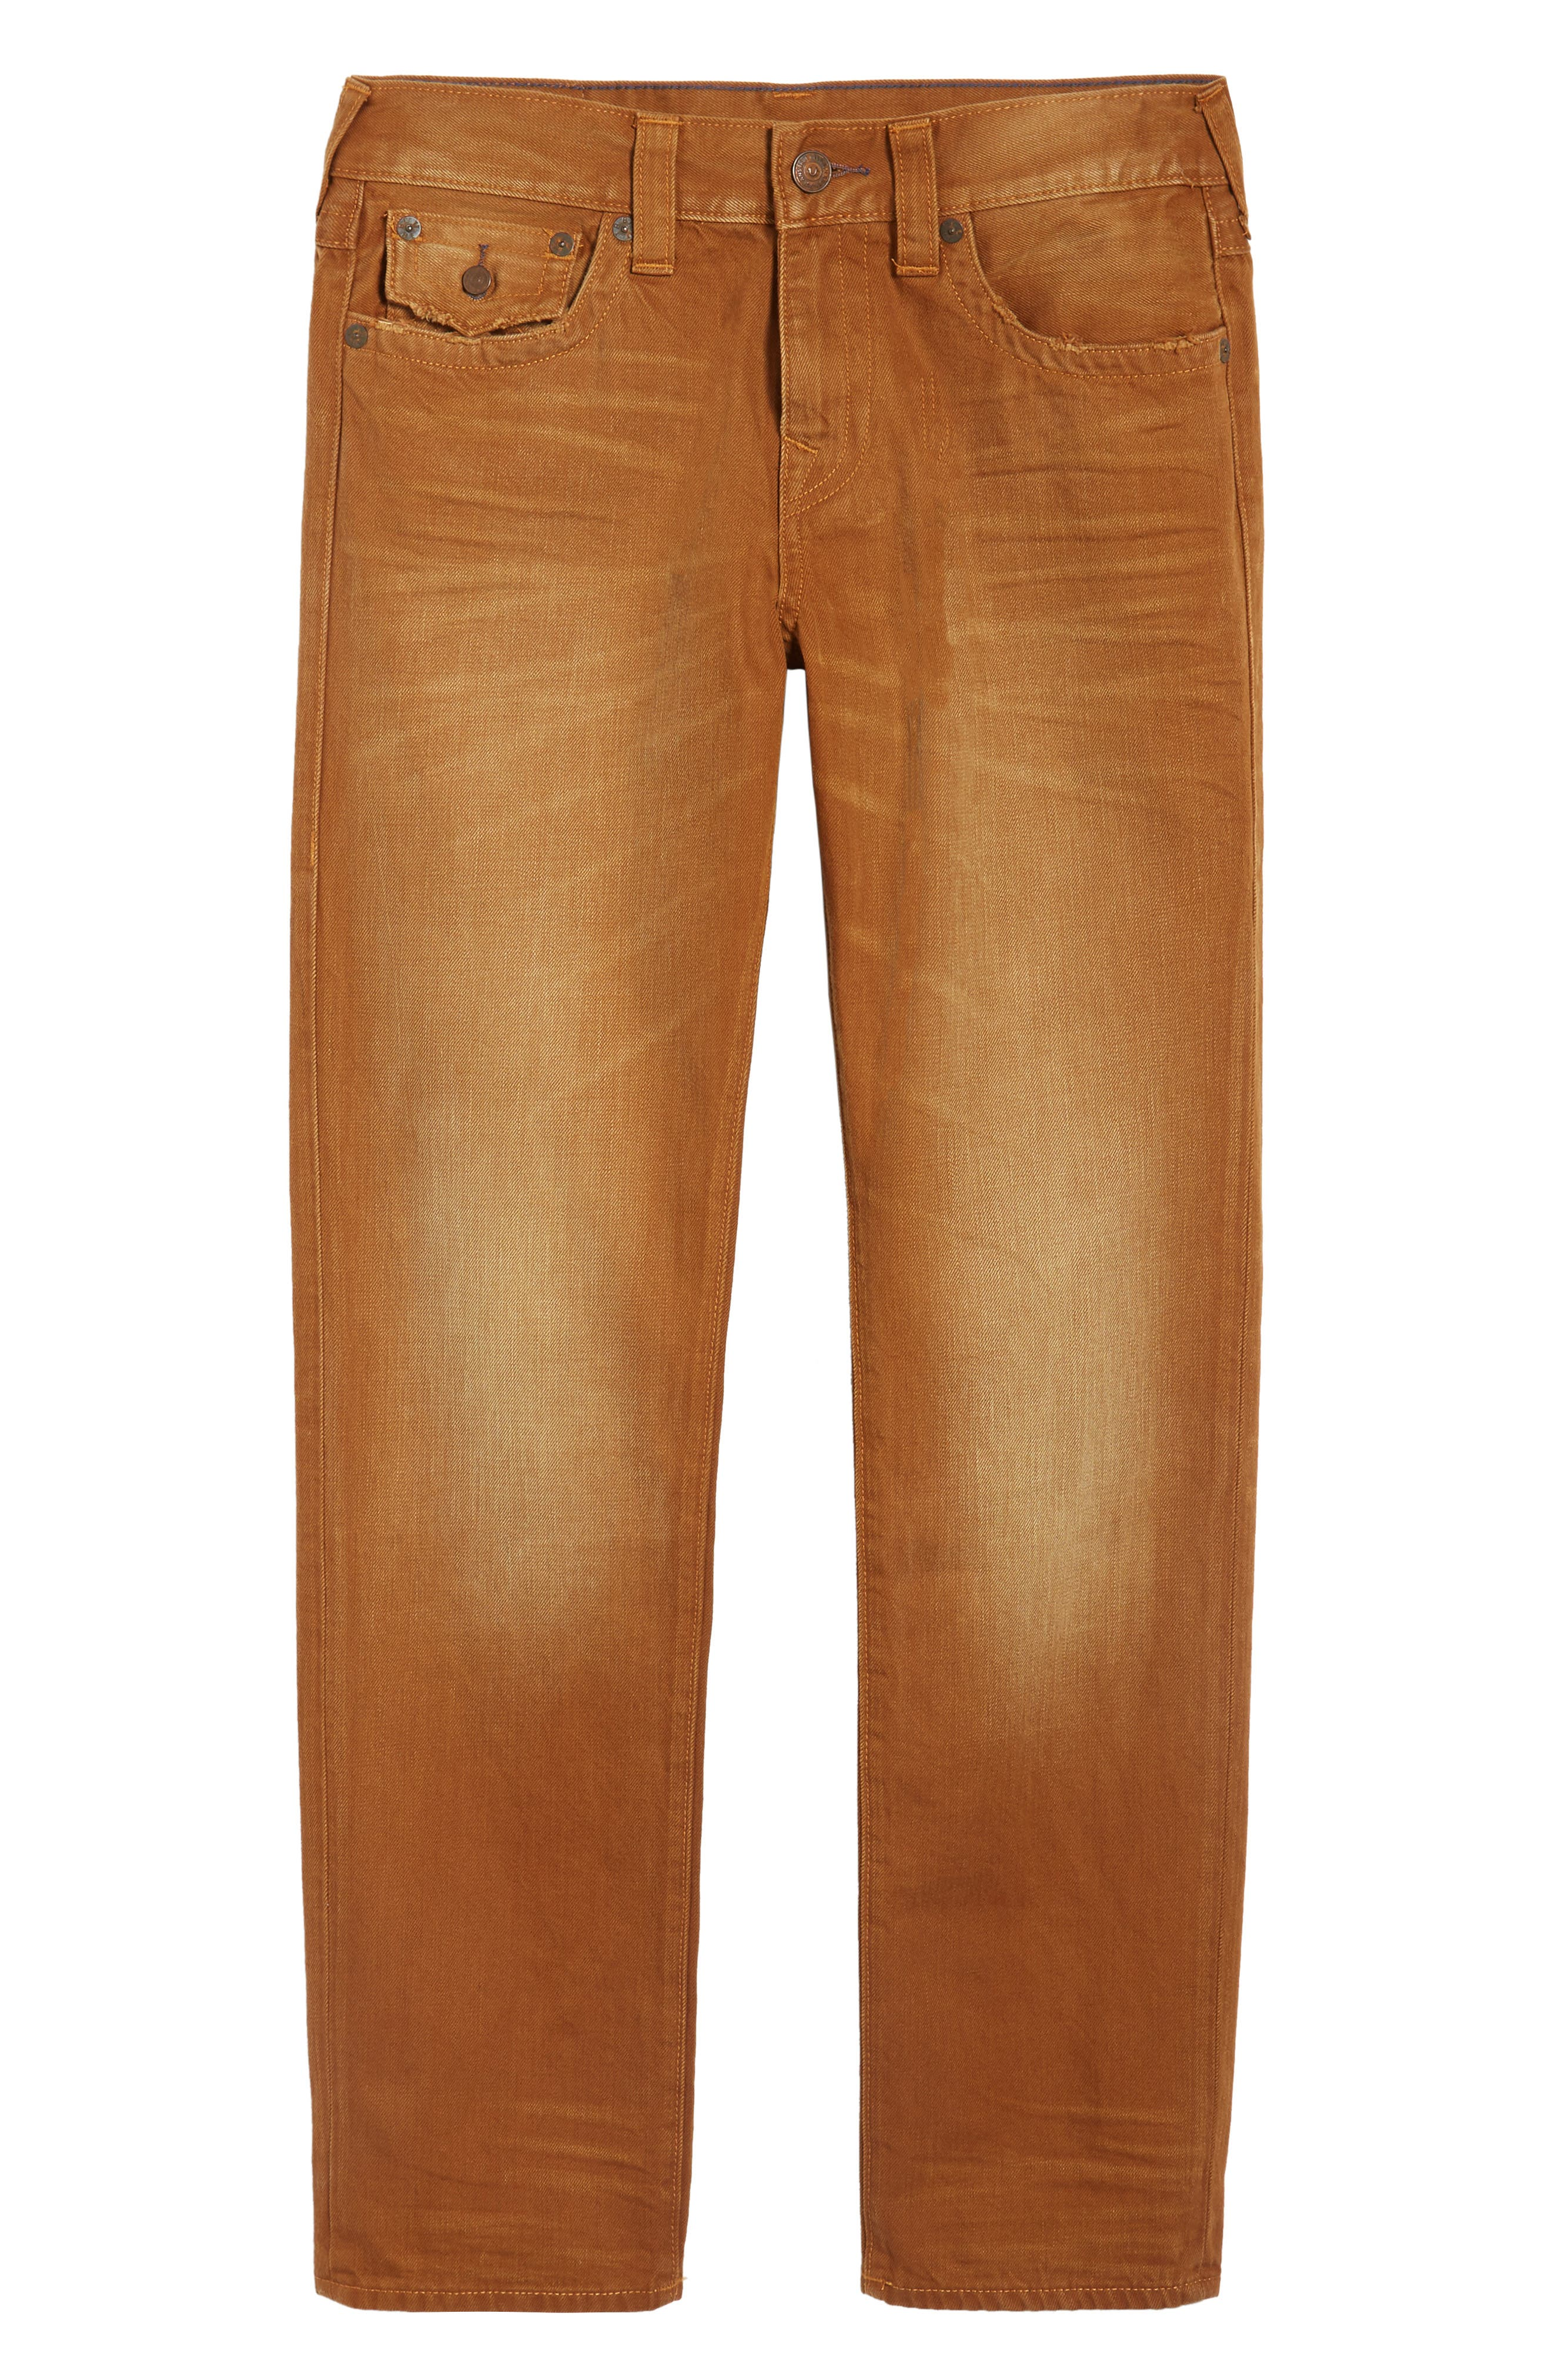 Geno Straight Fit Jeans,                             Alternate thumbnail 6, color,                             GOLDEN ROAD